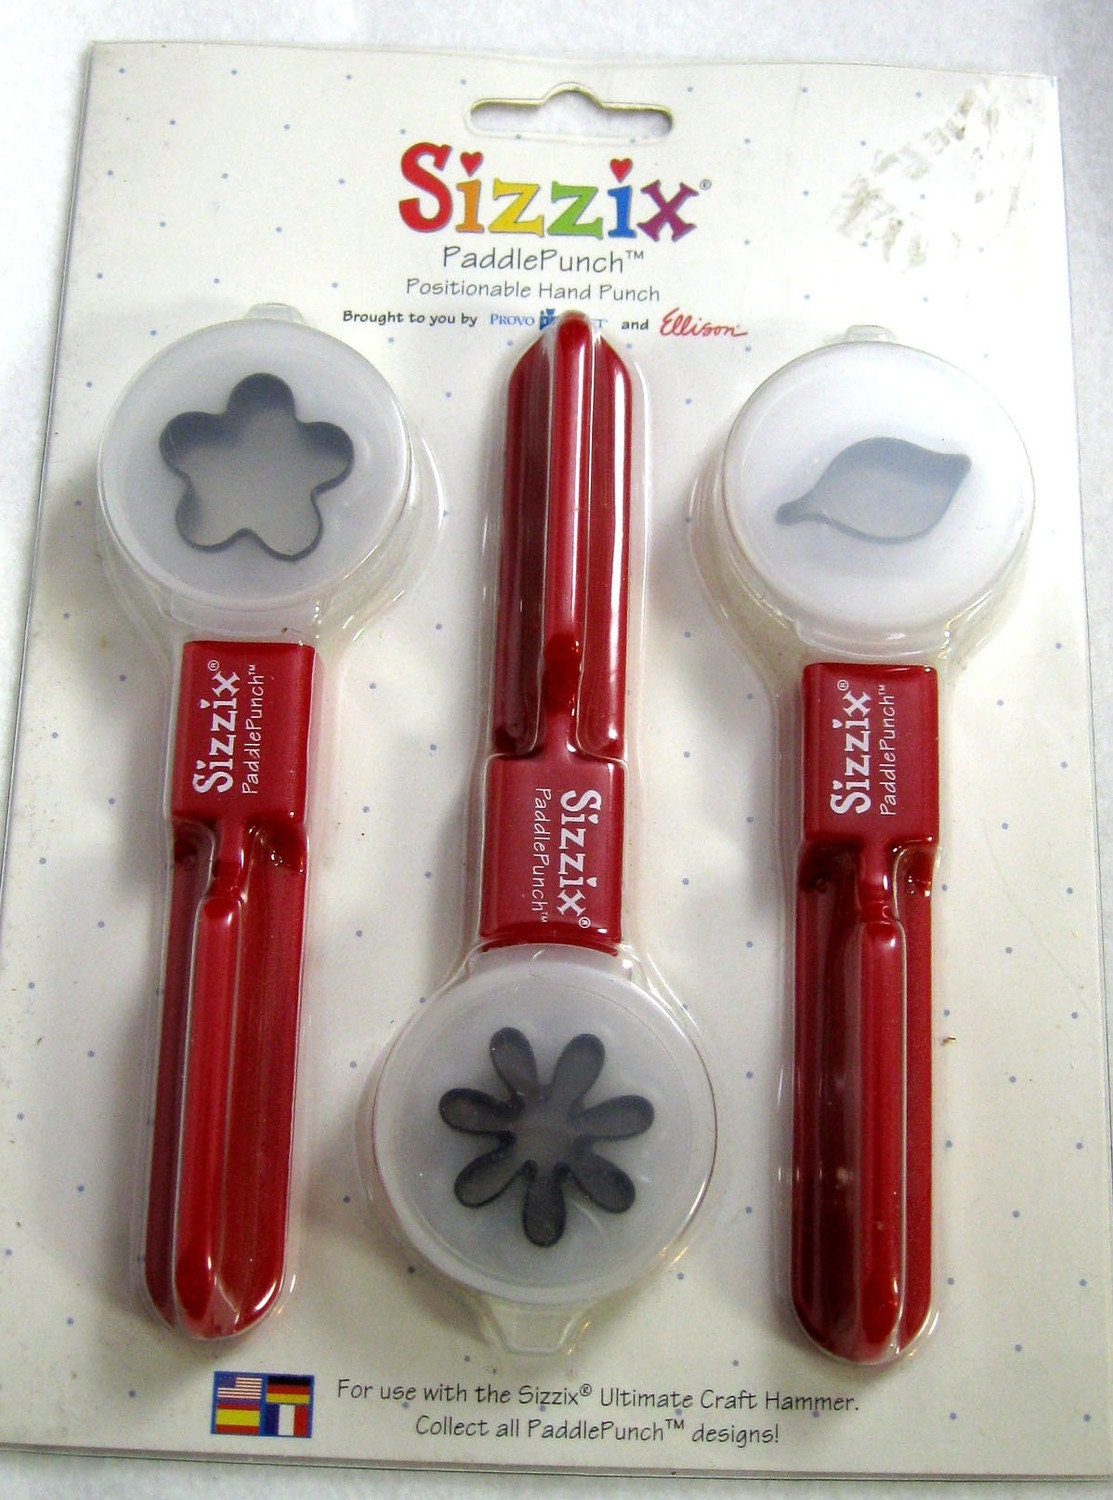 Sizzix Paddle Punch Set Posey Daisy Leaf No 38 0877